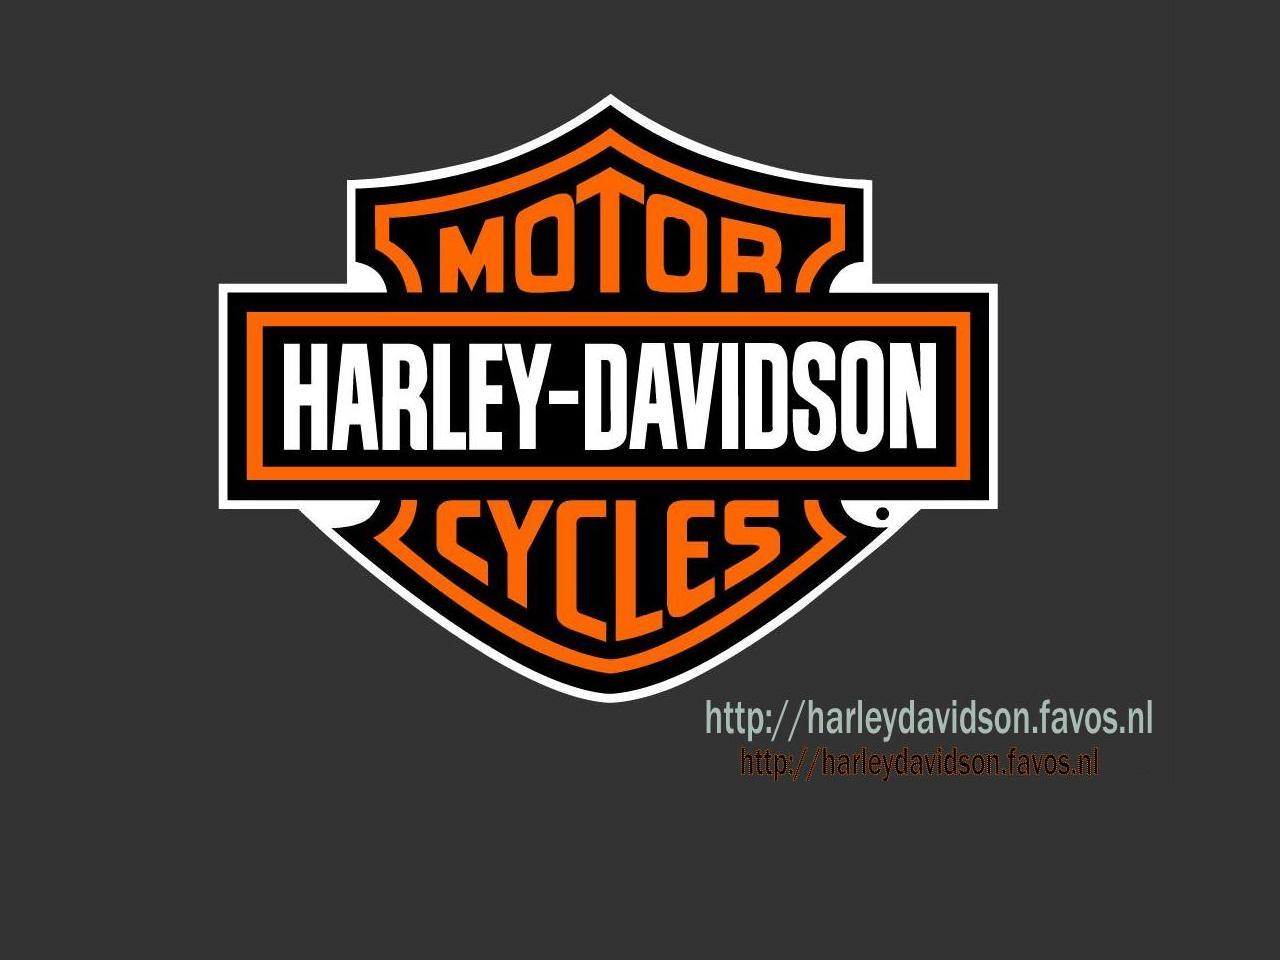 Screensaver Windows Screensaver Mac Wallpaper Harley Davidson tip 1280x960